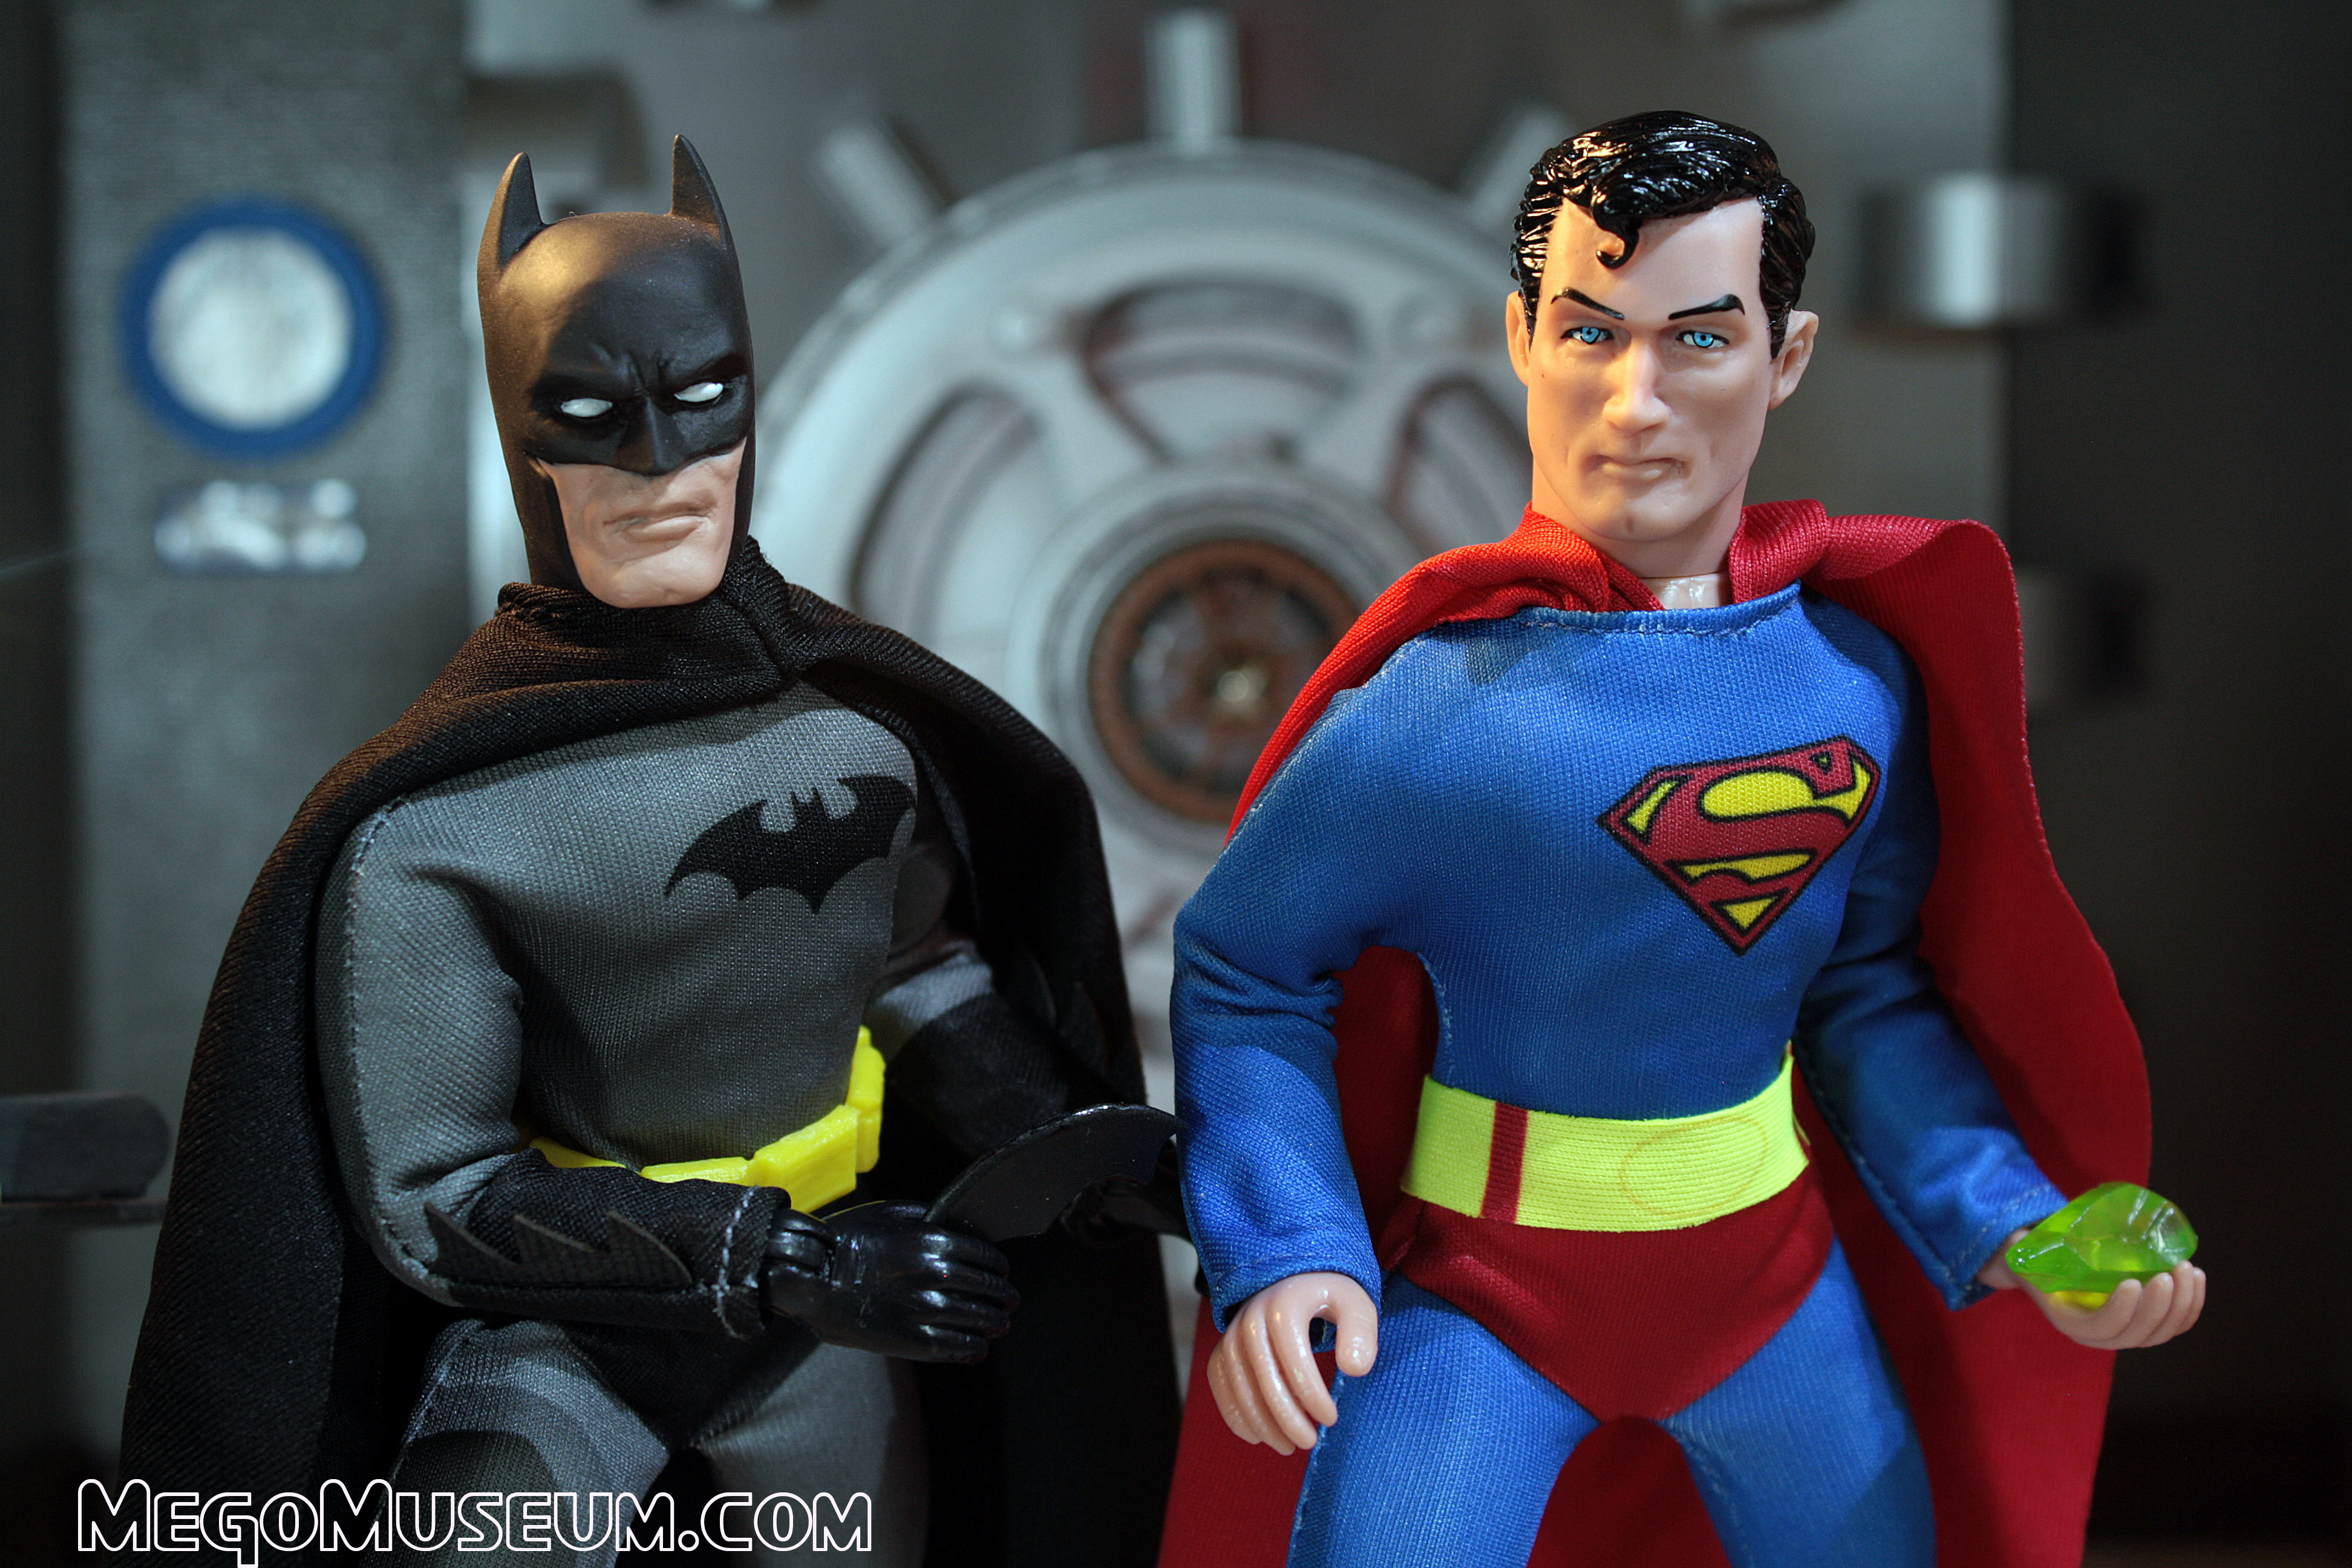 Worlds Greatest Mego Heroes